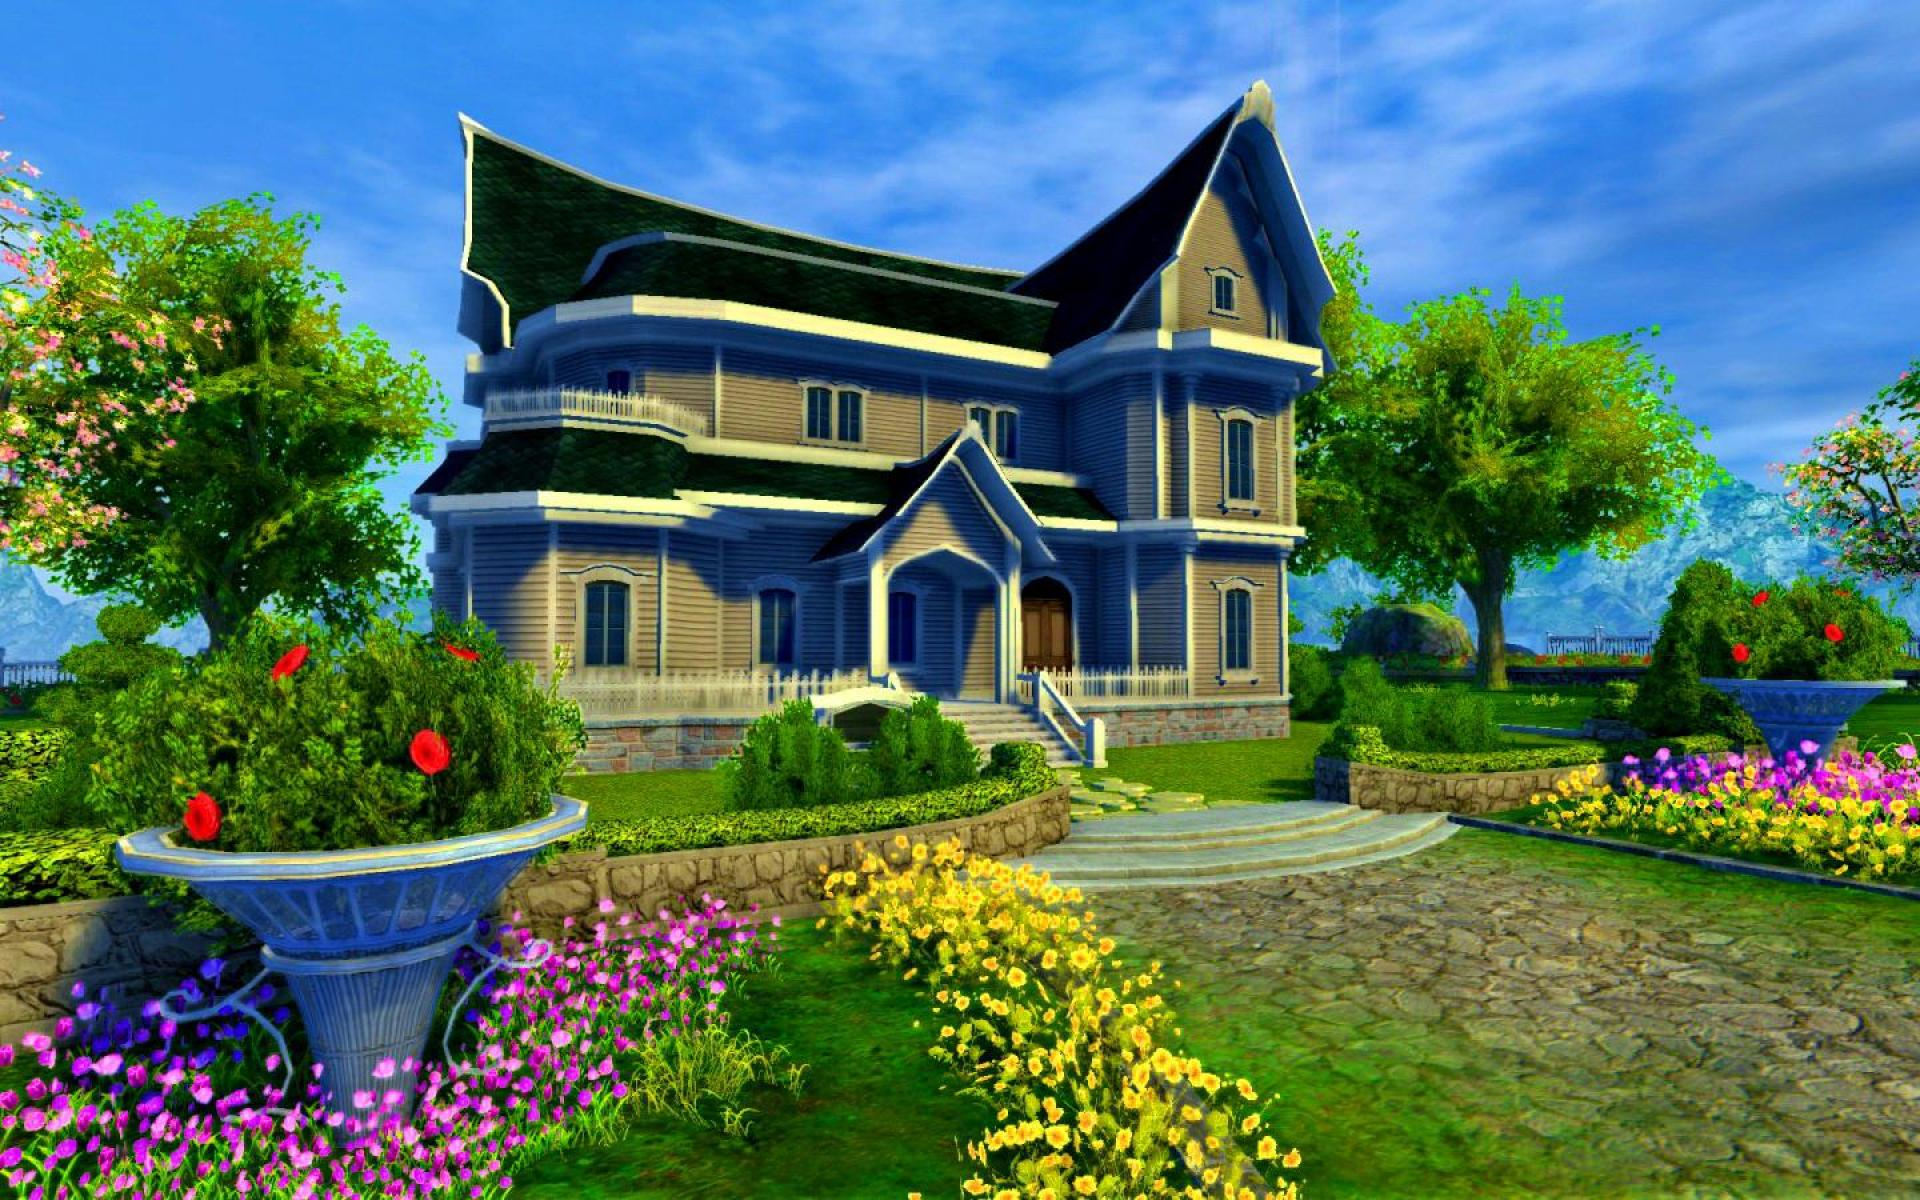 Dream home wallpaper wallpapersafari for Wallpaper for house wall